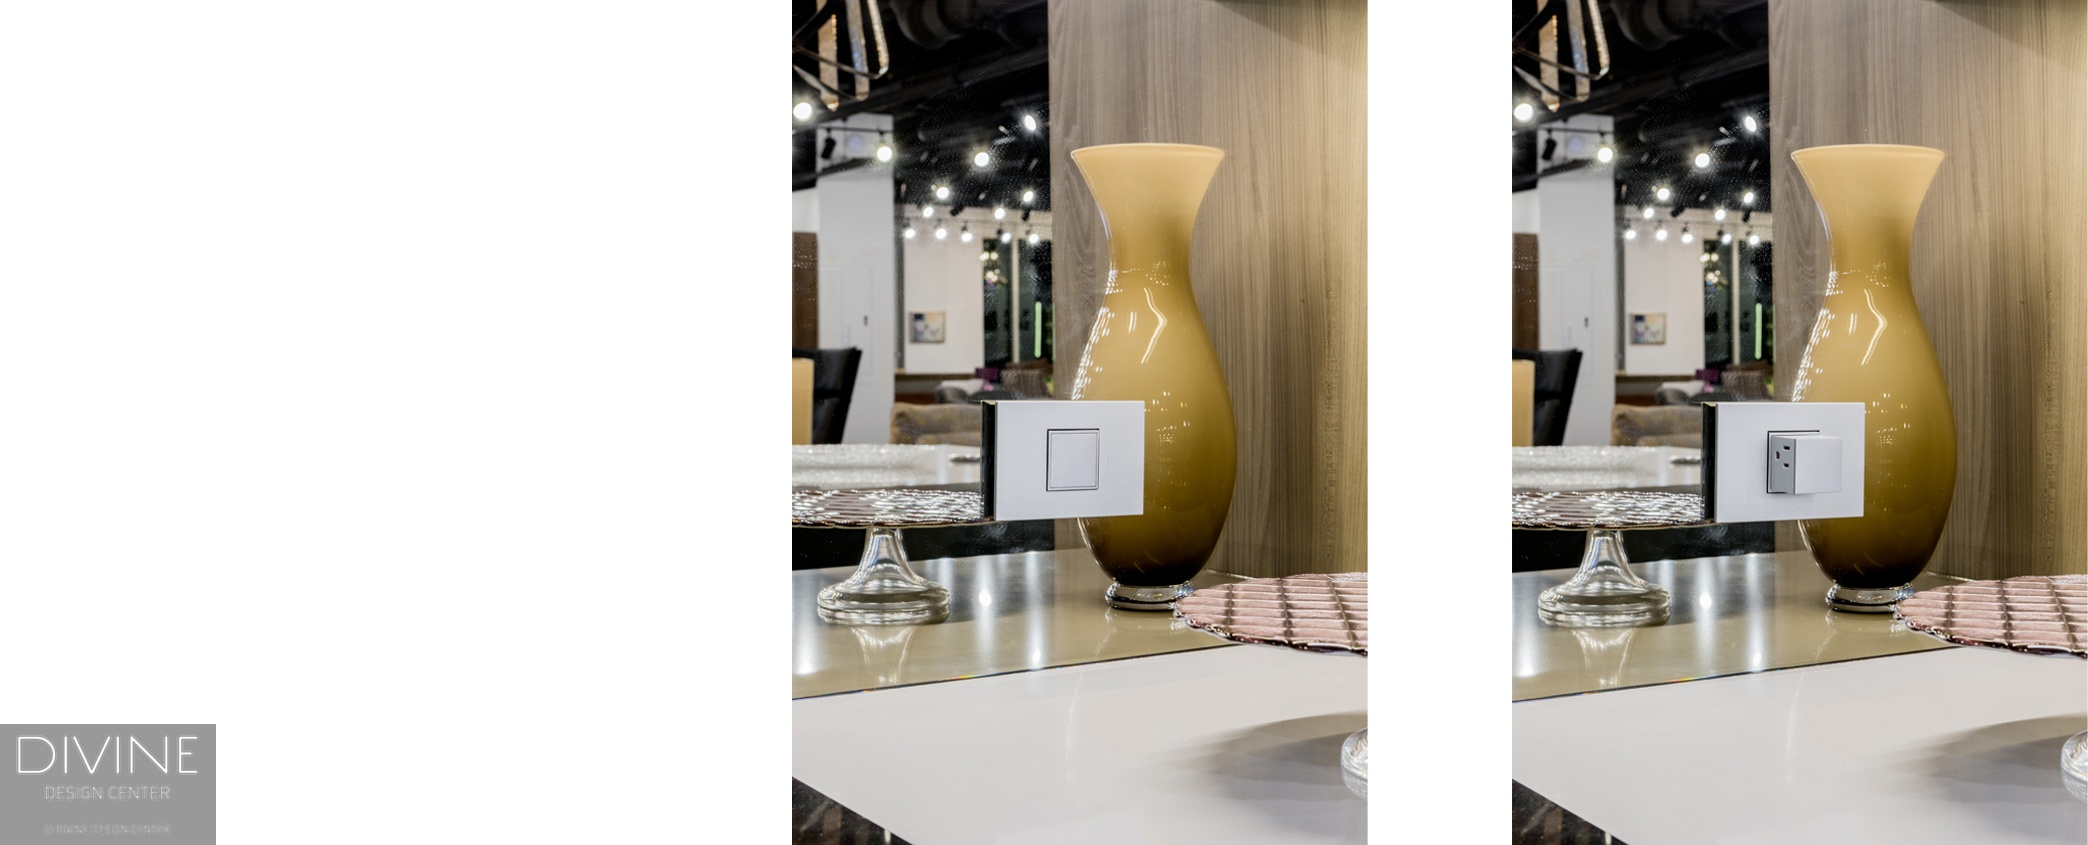 pop-out, pop-up, legrand, le-grand pop out, quartzite countertops, yellow vase, modern, modern kitchen, modern design, boston, massachusetts, divine design center, showroom, outlets, outlets in a kitchen